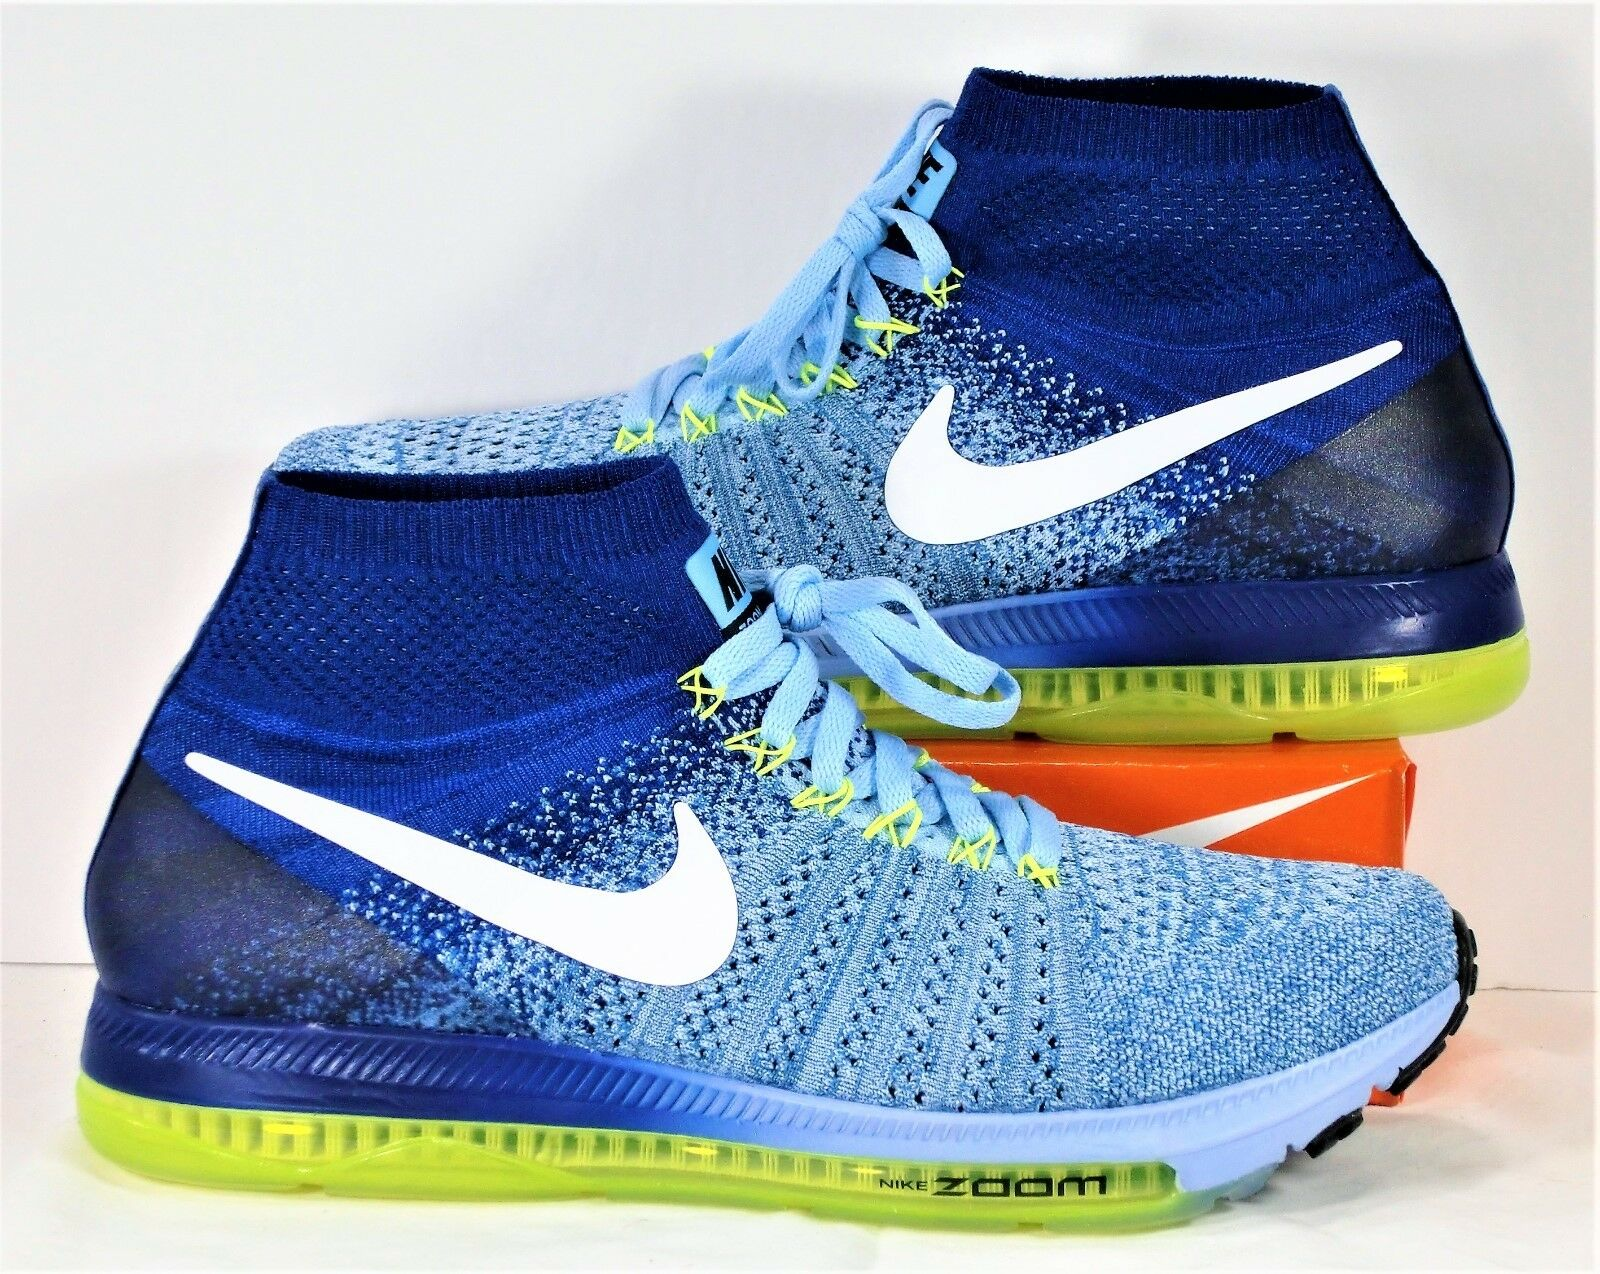 Nike Zoom All Out Flyknit Royal Blue & White & Volt Running Sz 9 NEW 845361 400